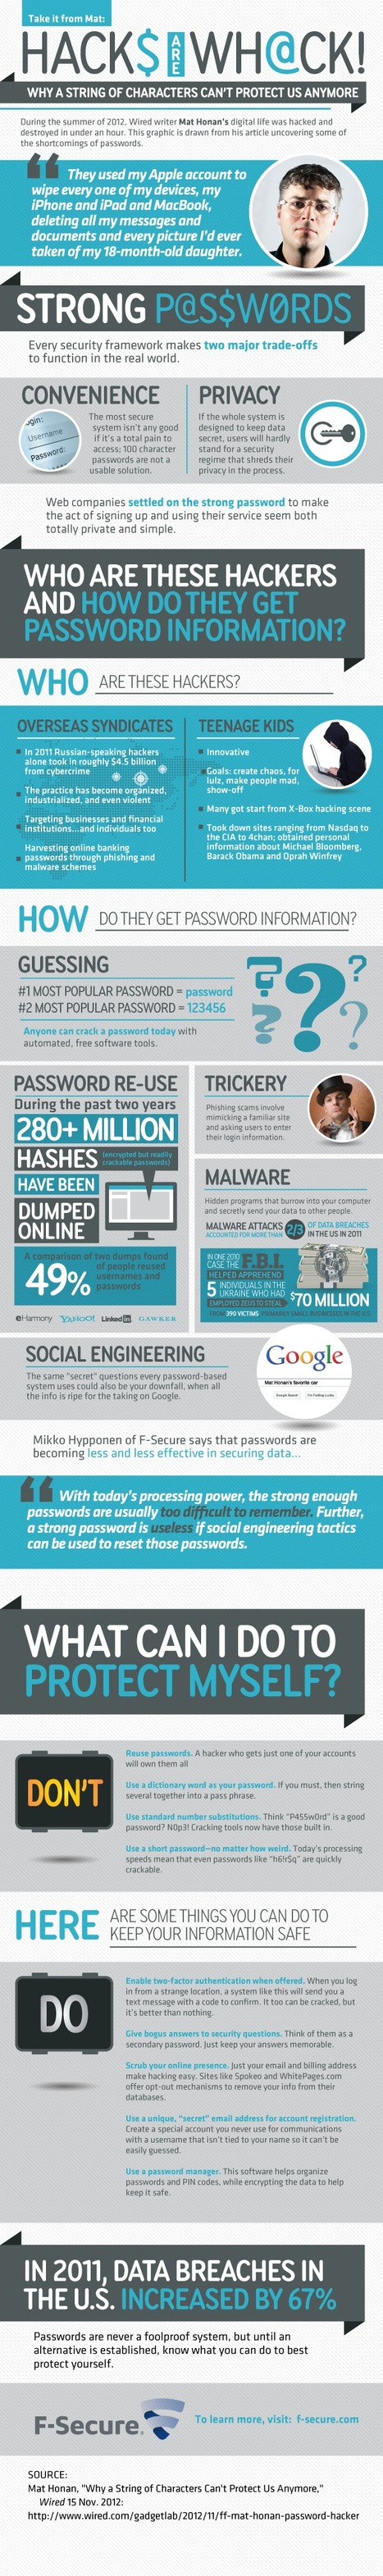 Hacking lessons learned: how to cover your digital ass [Infographic] | Mercado seguridad TIC | Scoop.it